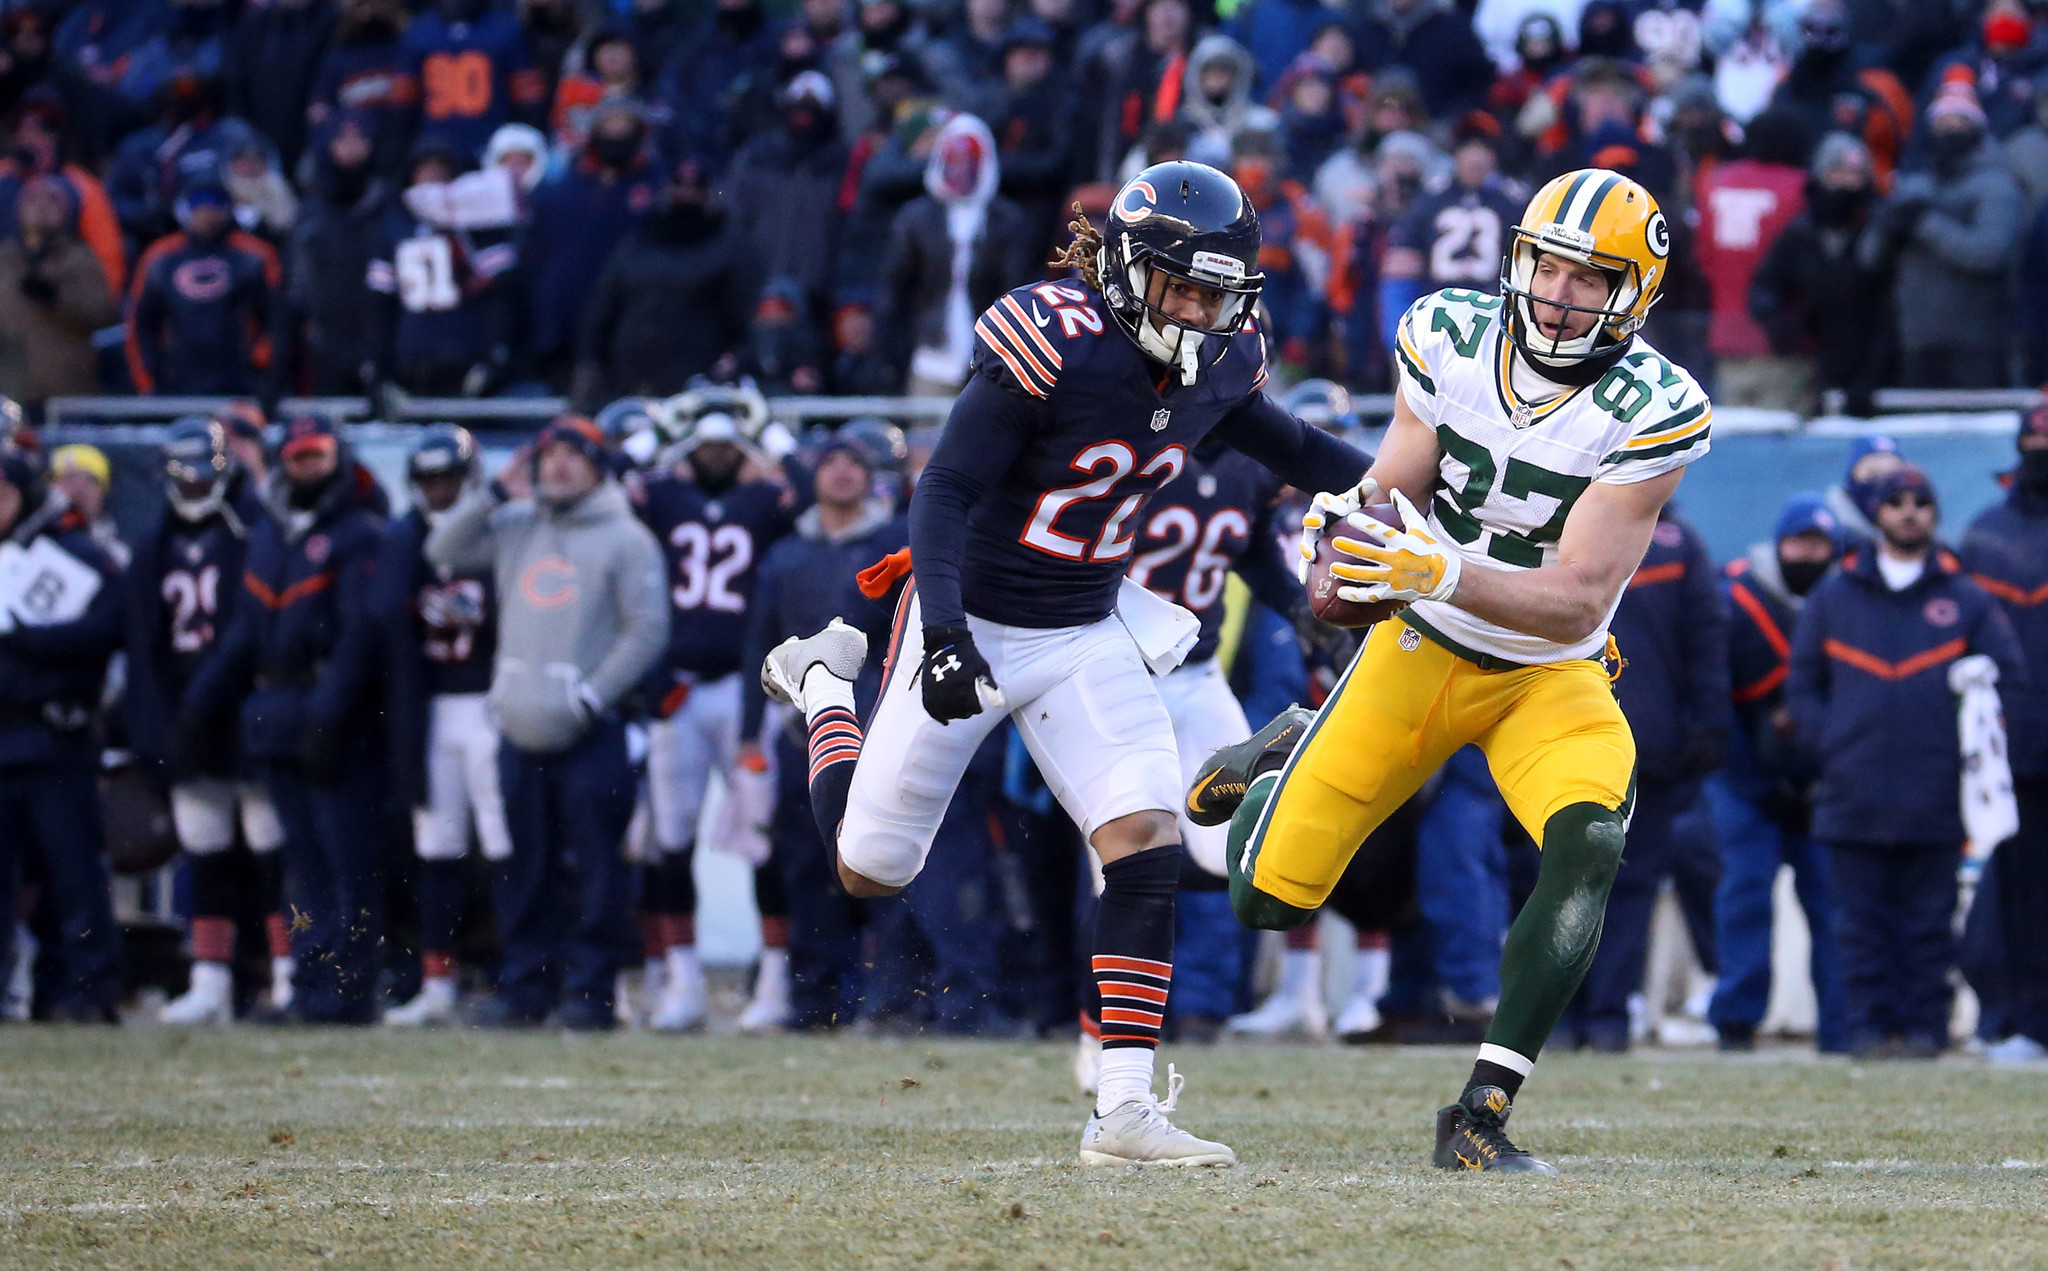 Ct-bears-secondary-offseason-changes-spt-1220-20161219